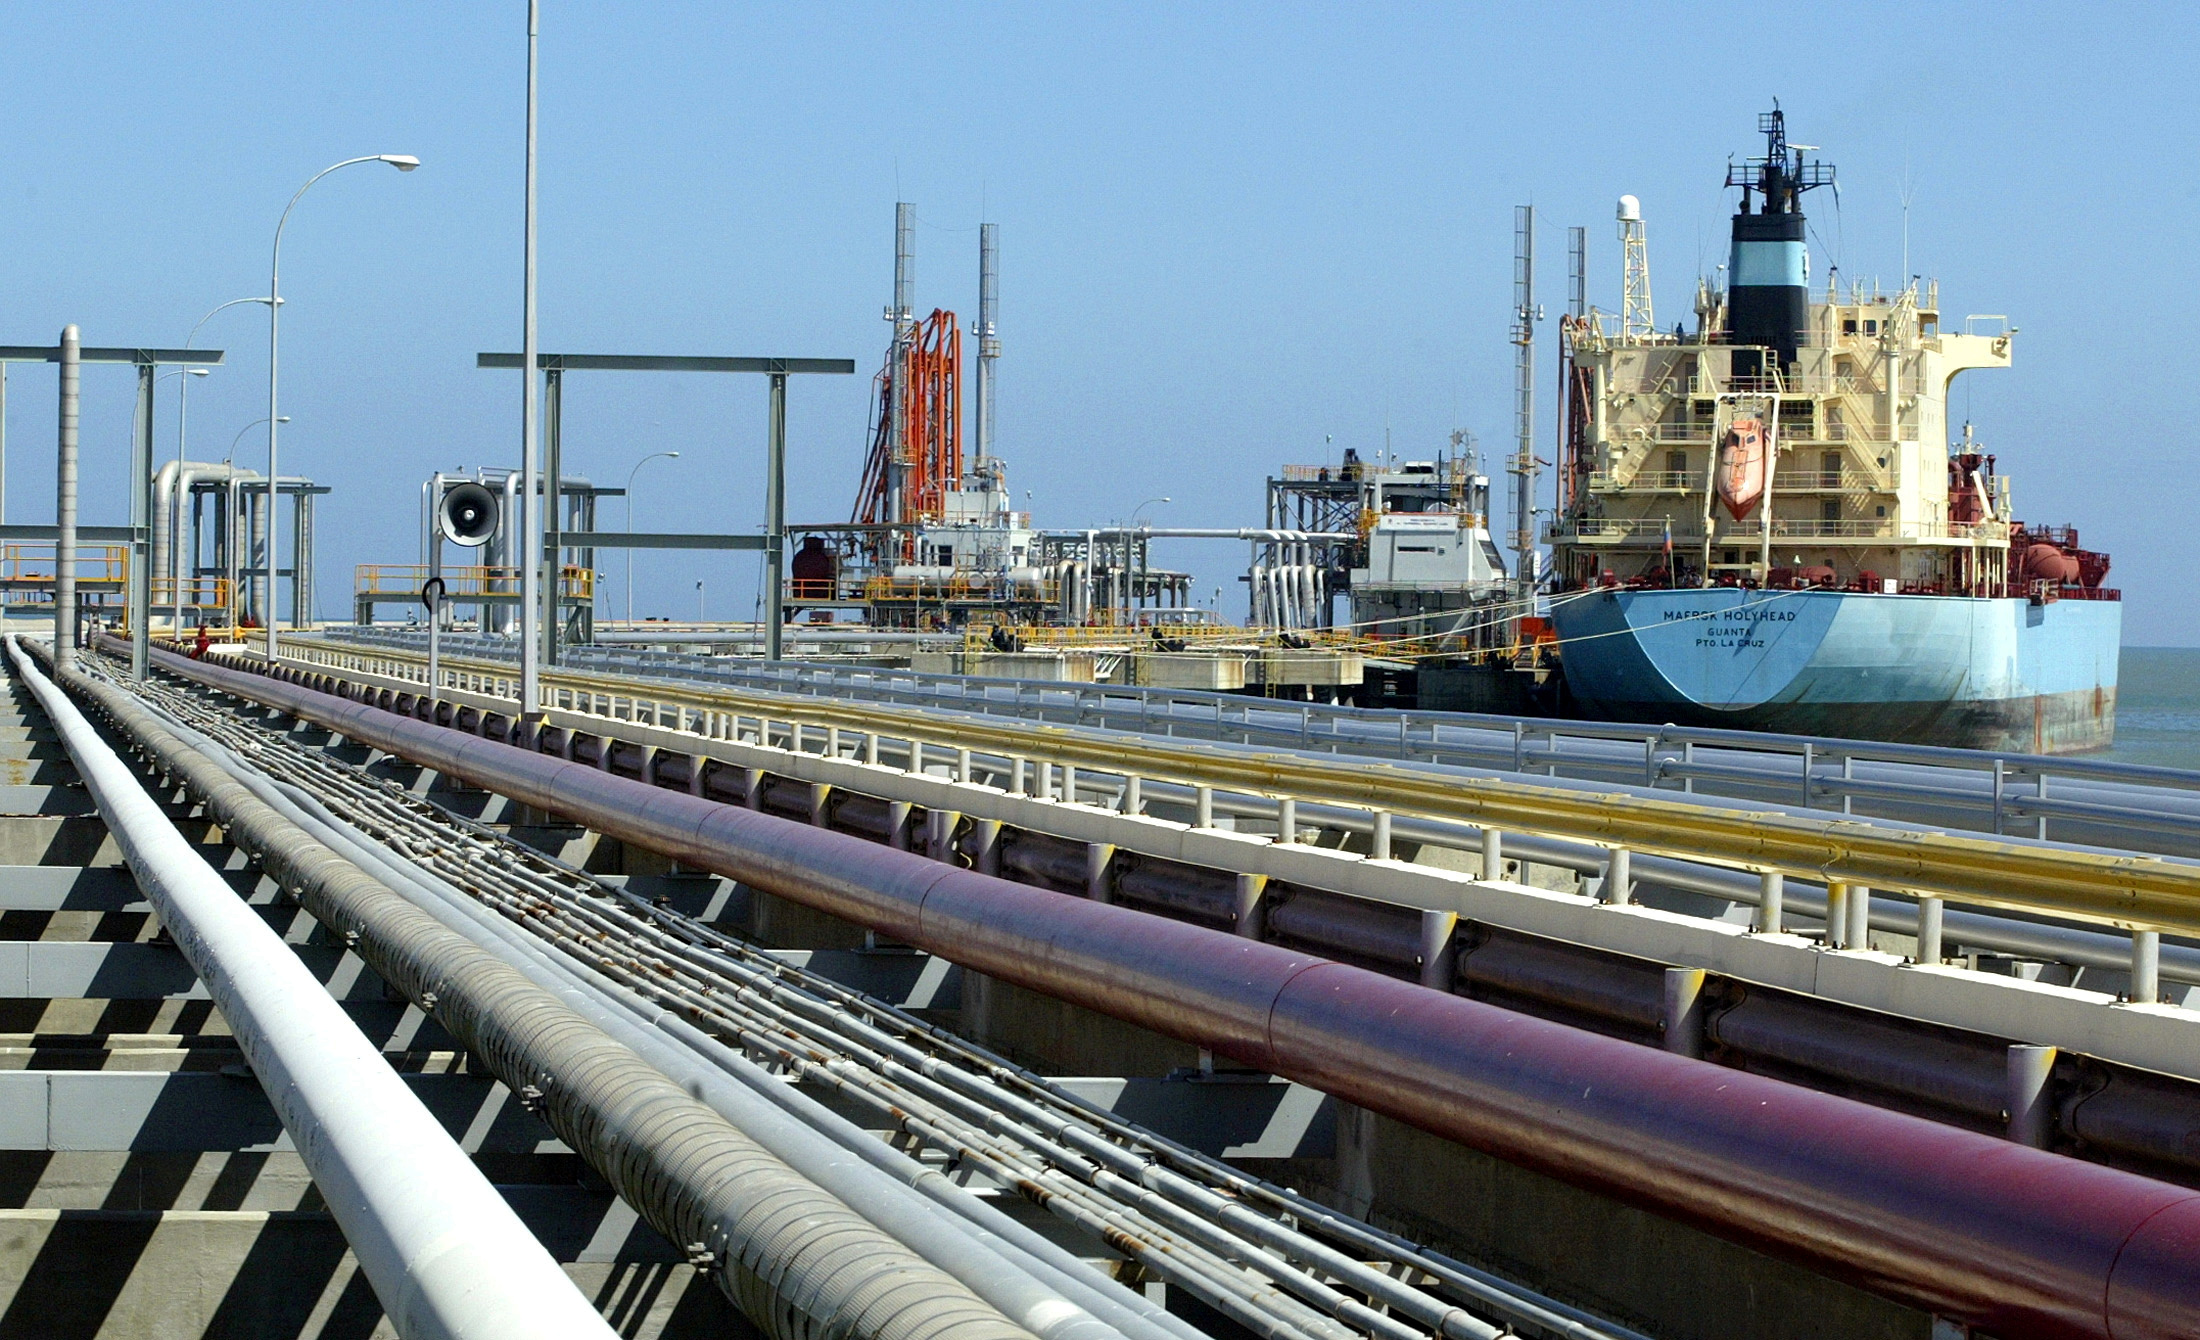 FILE PHOTO: An oil tanker is seen at Jose refinery cargo terminal in Venezuela in this undated photo.